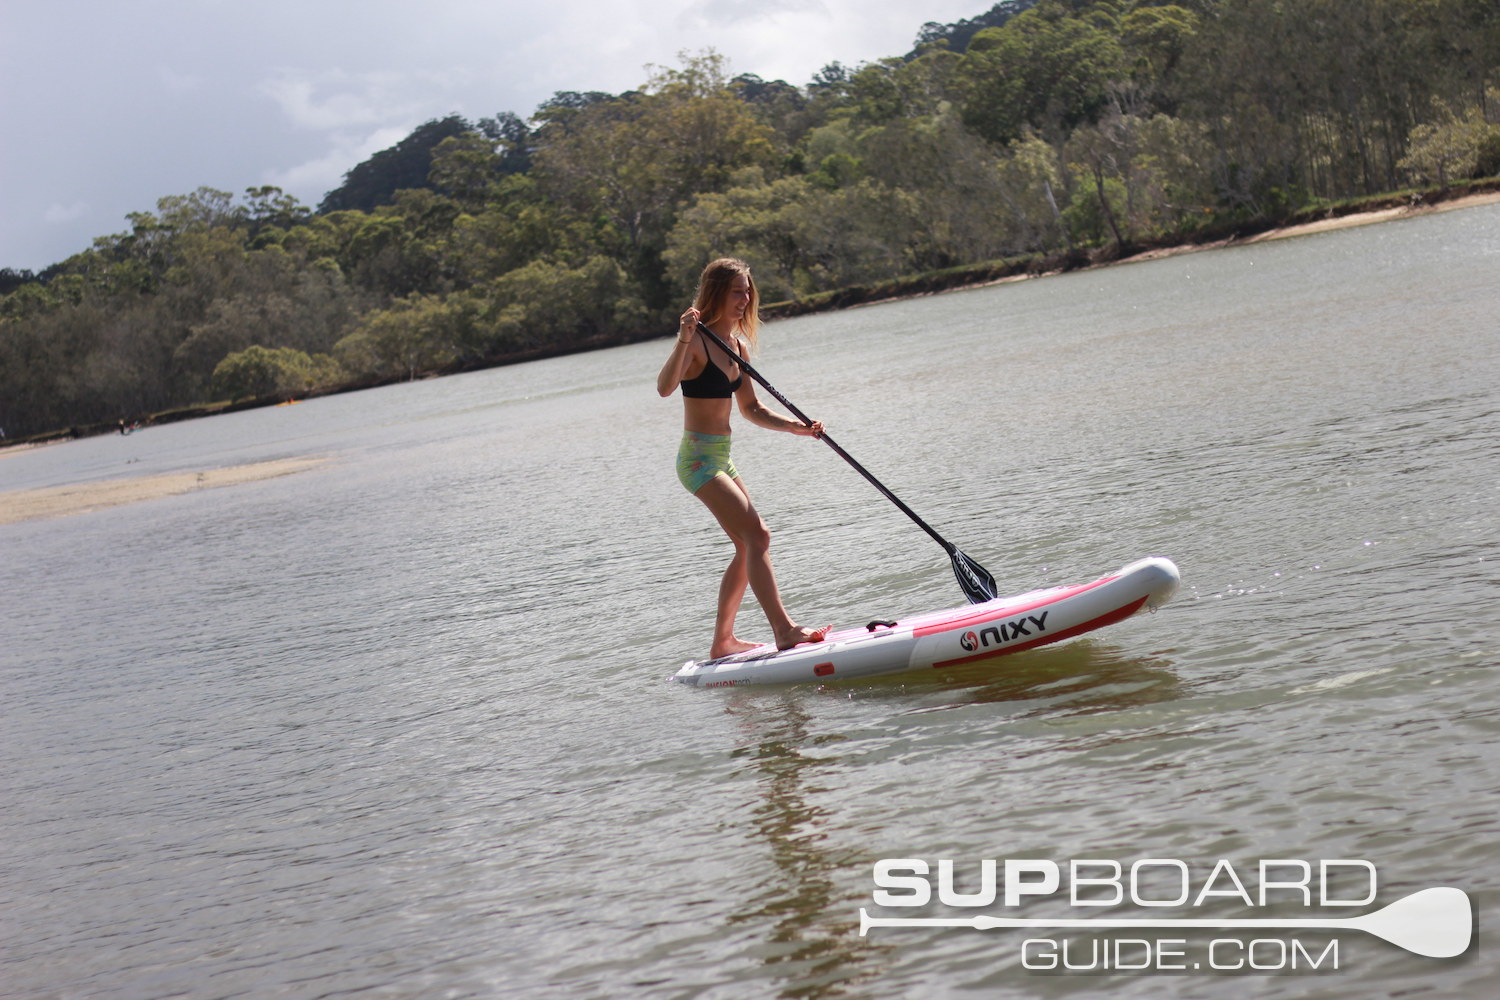 Compact SUP performance